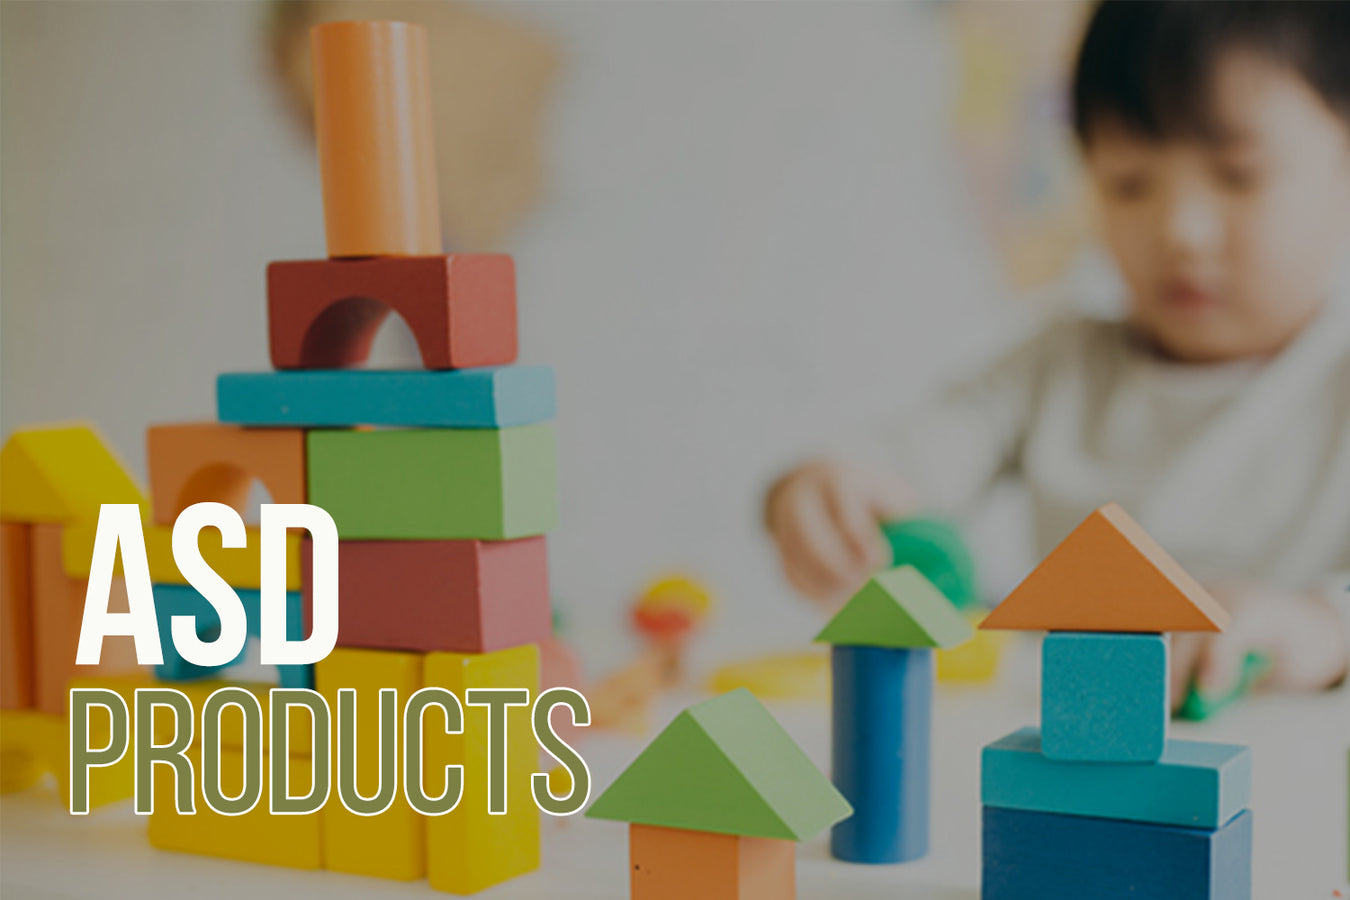 ASD PRODUCTS